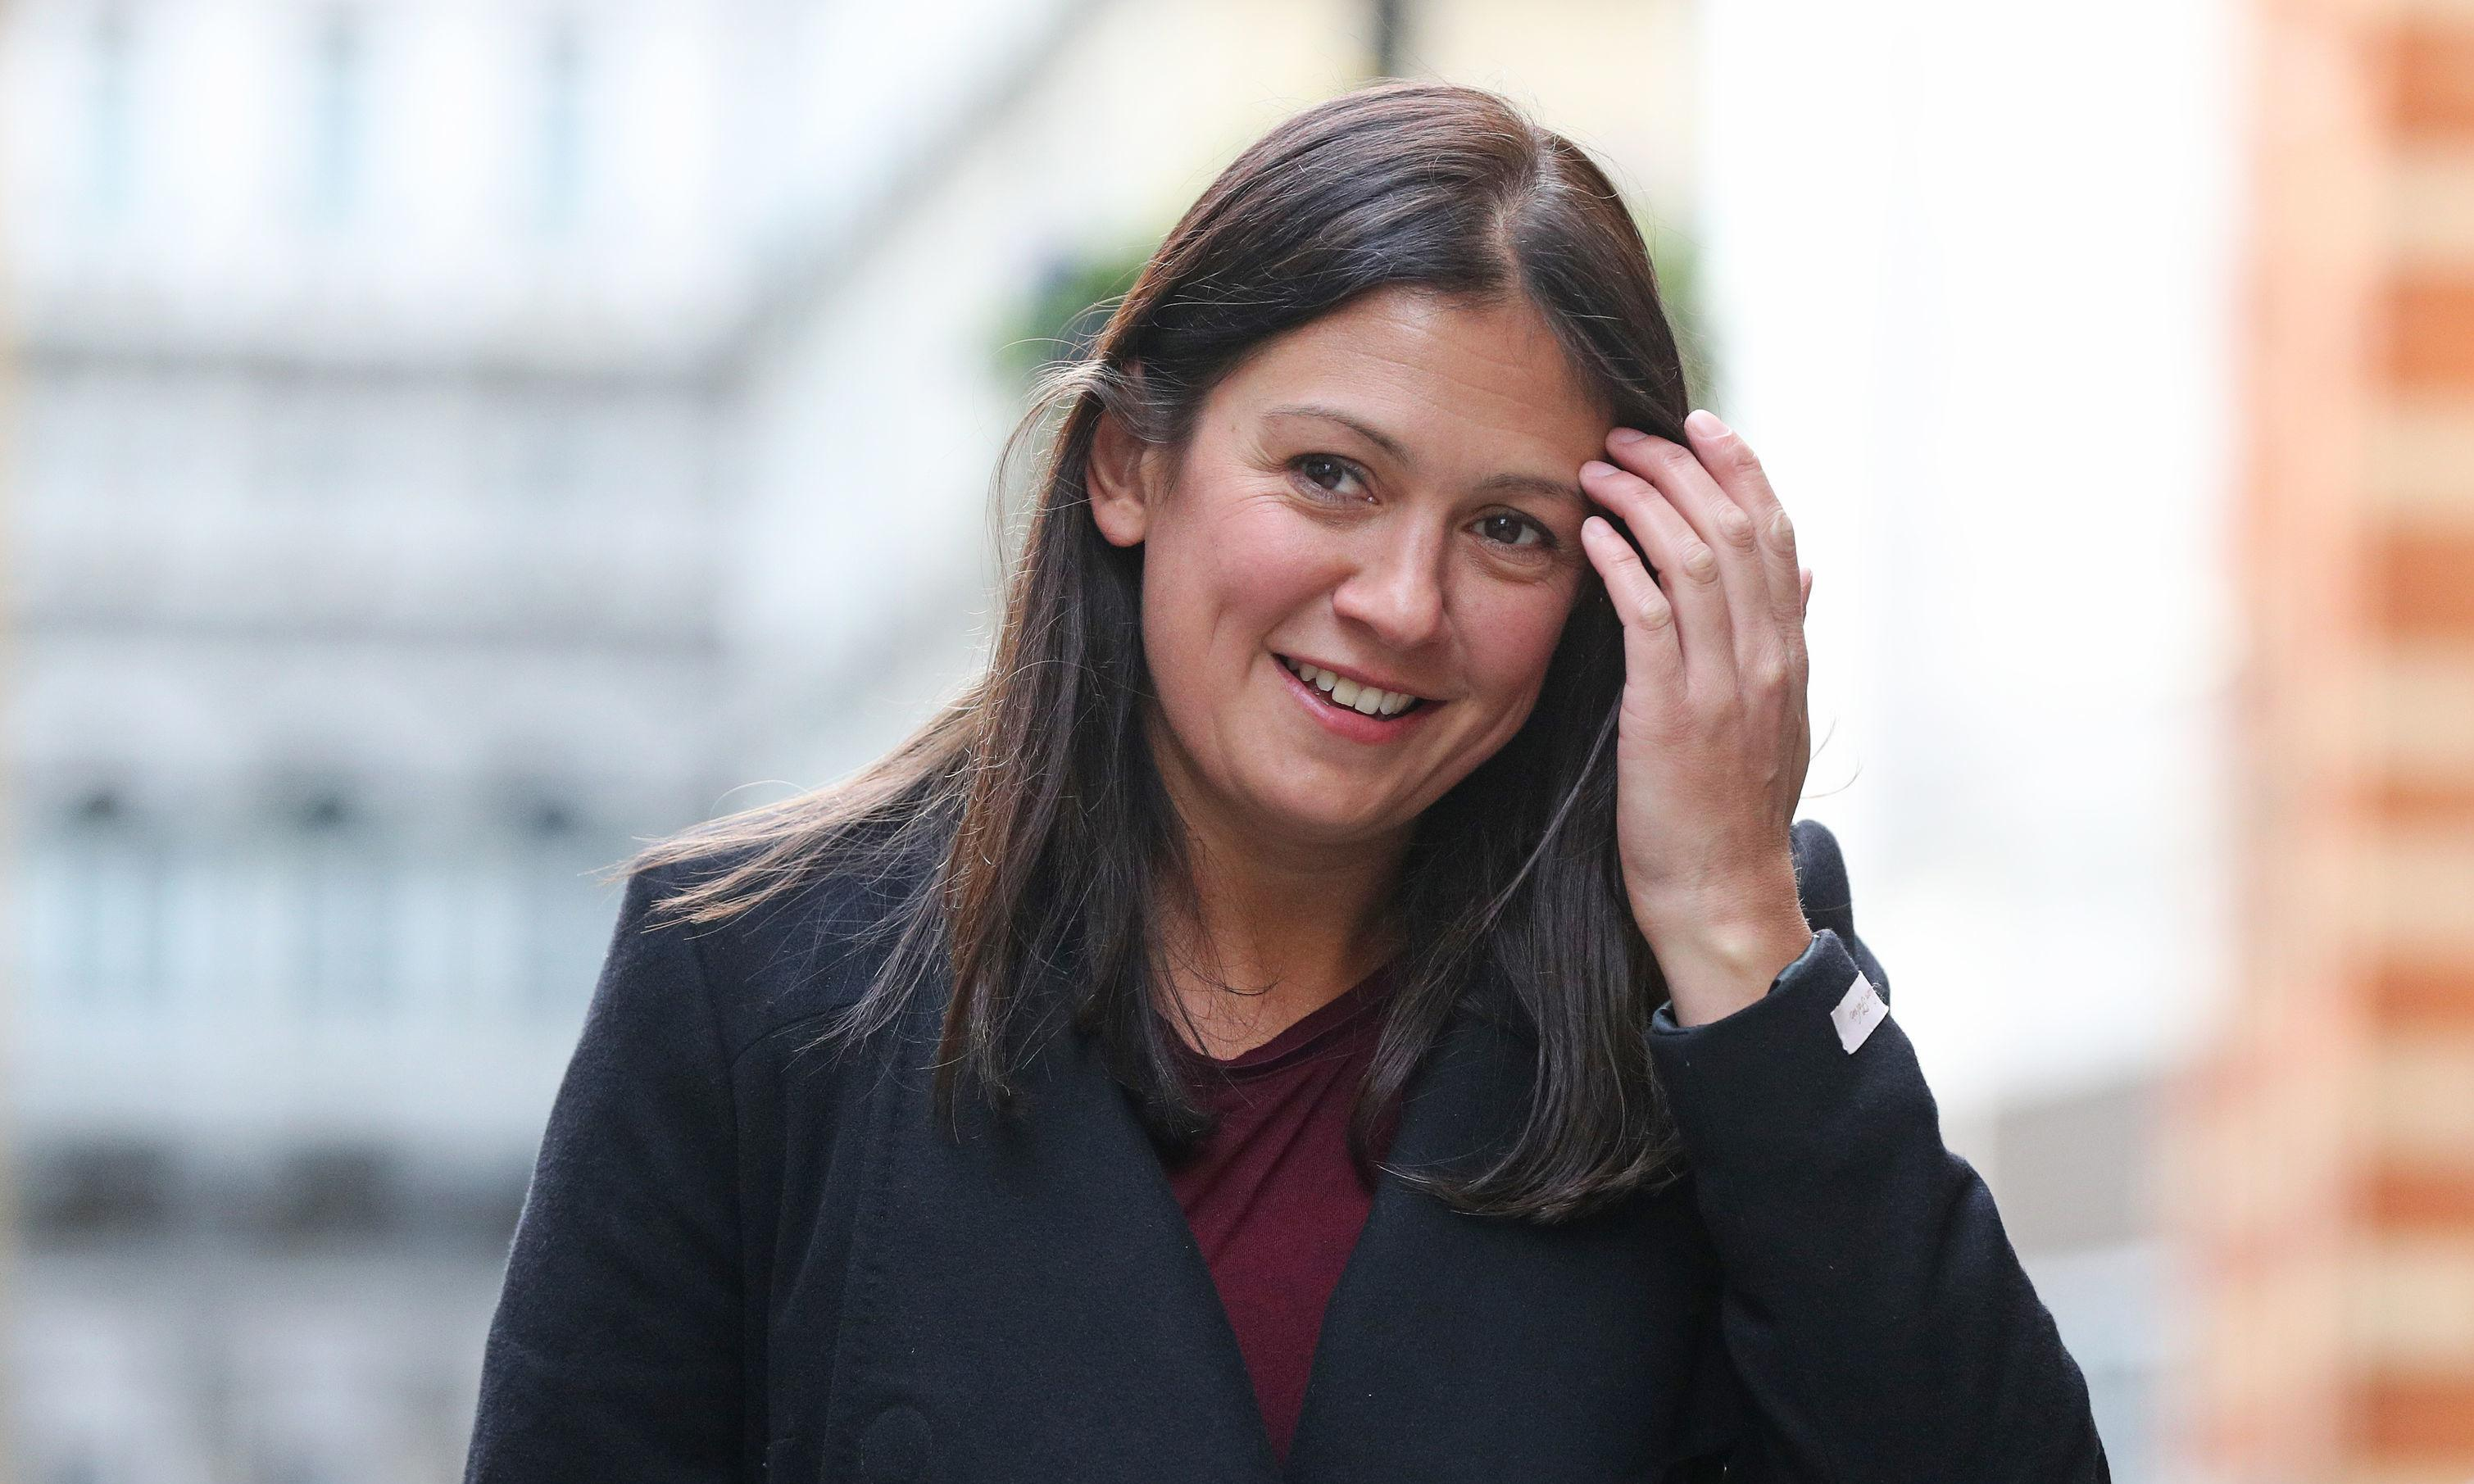 Lisa Nandy is smart, clever and thoughtful. She'll never be Labour leader